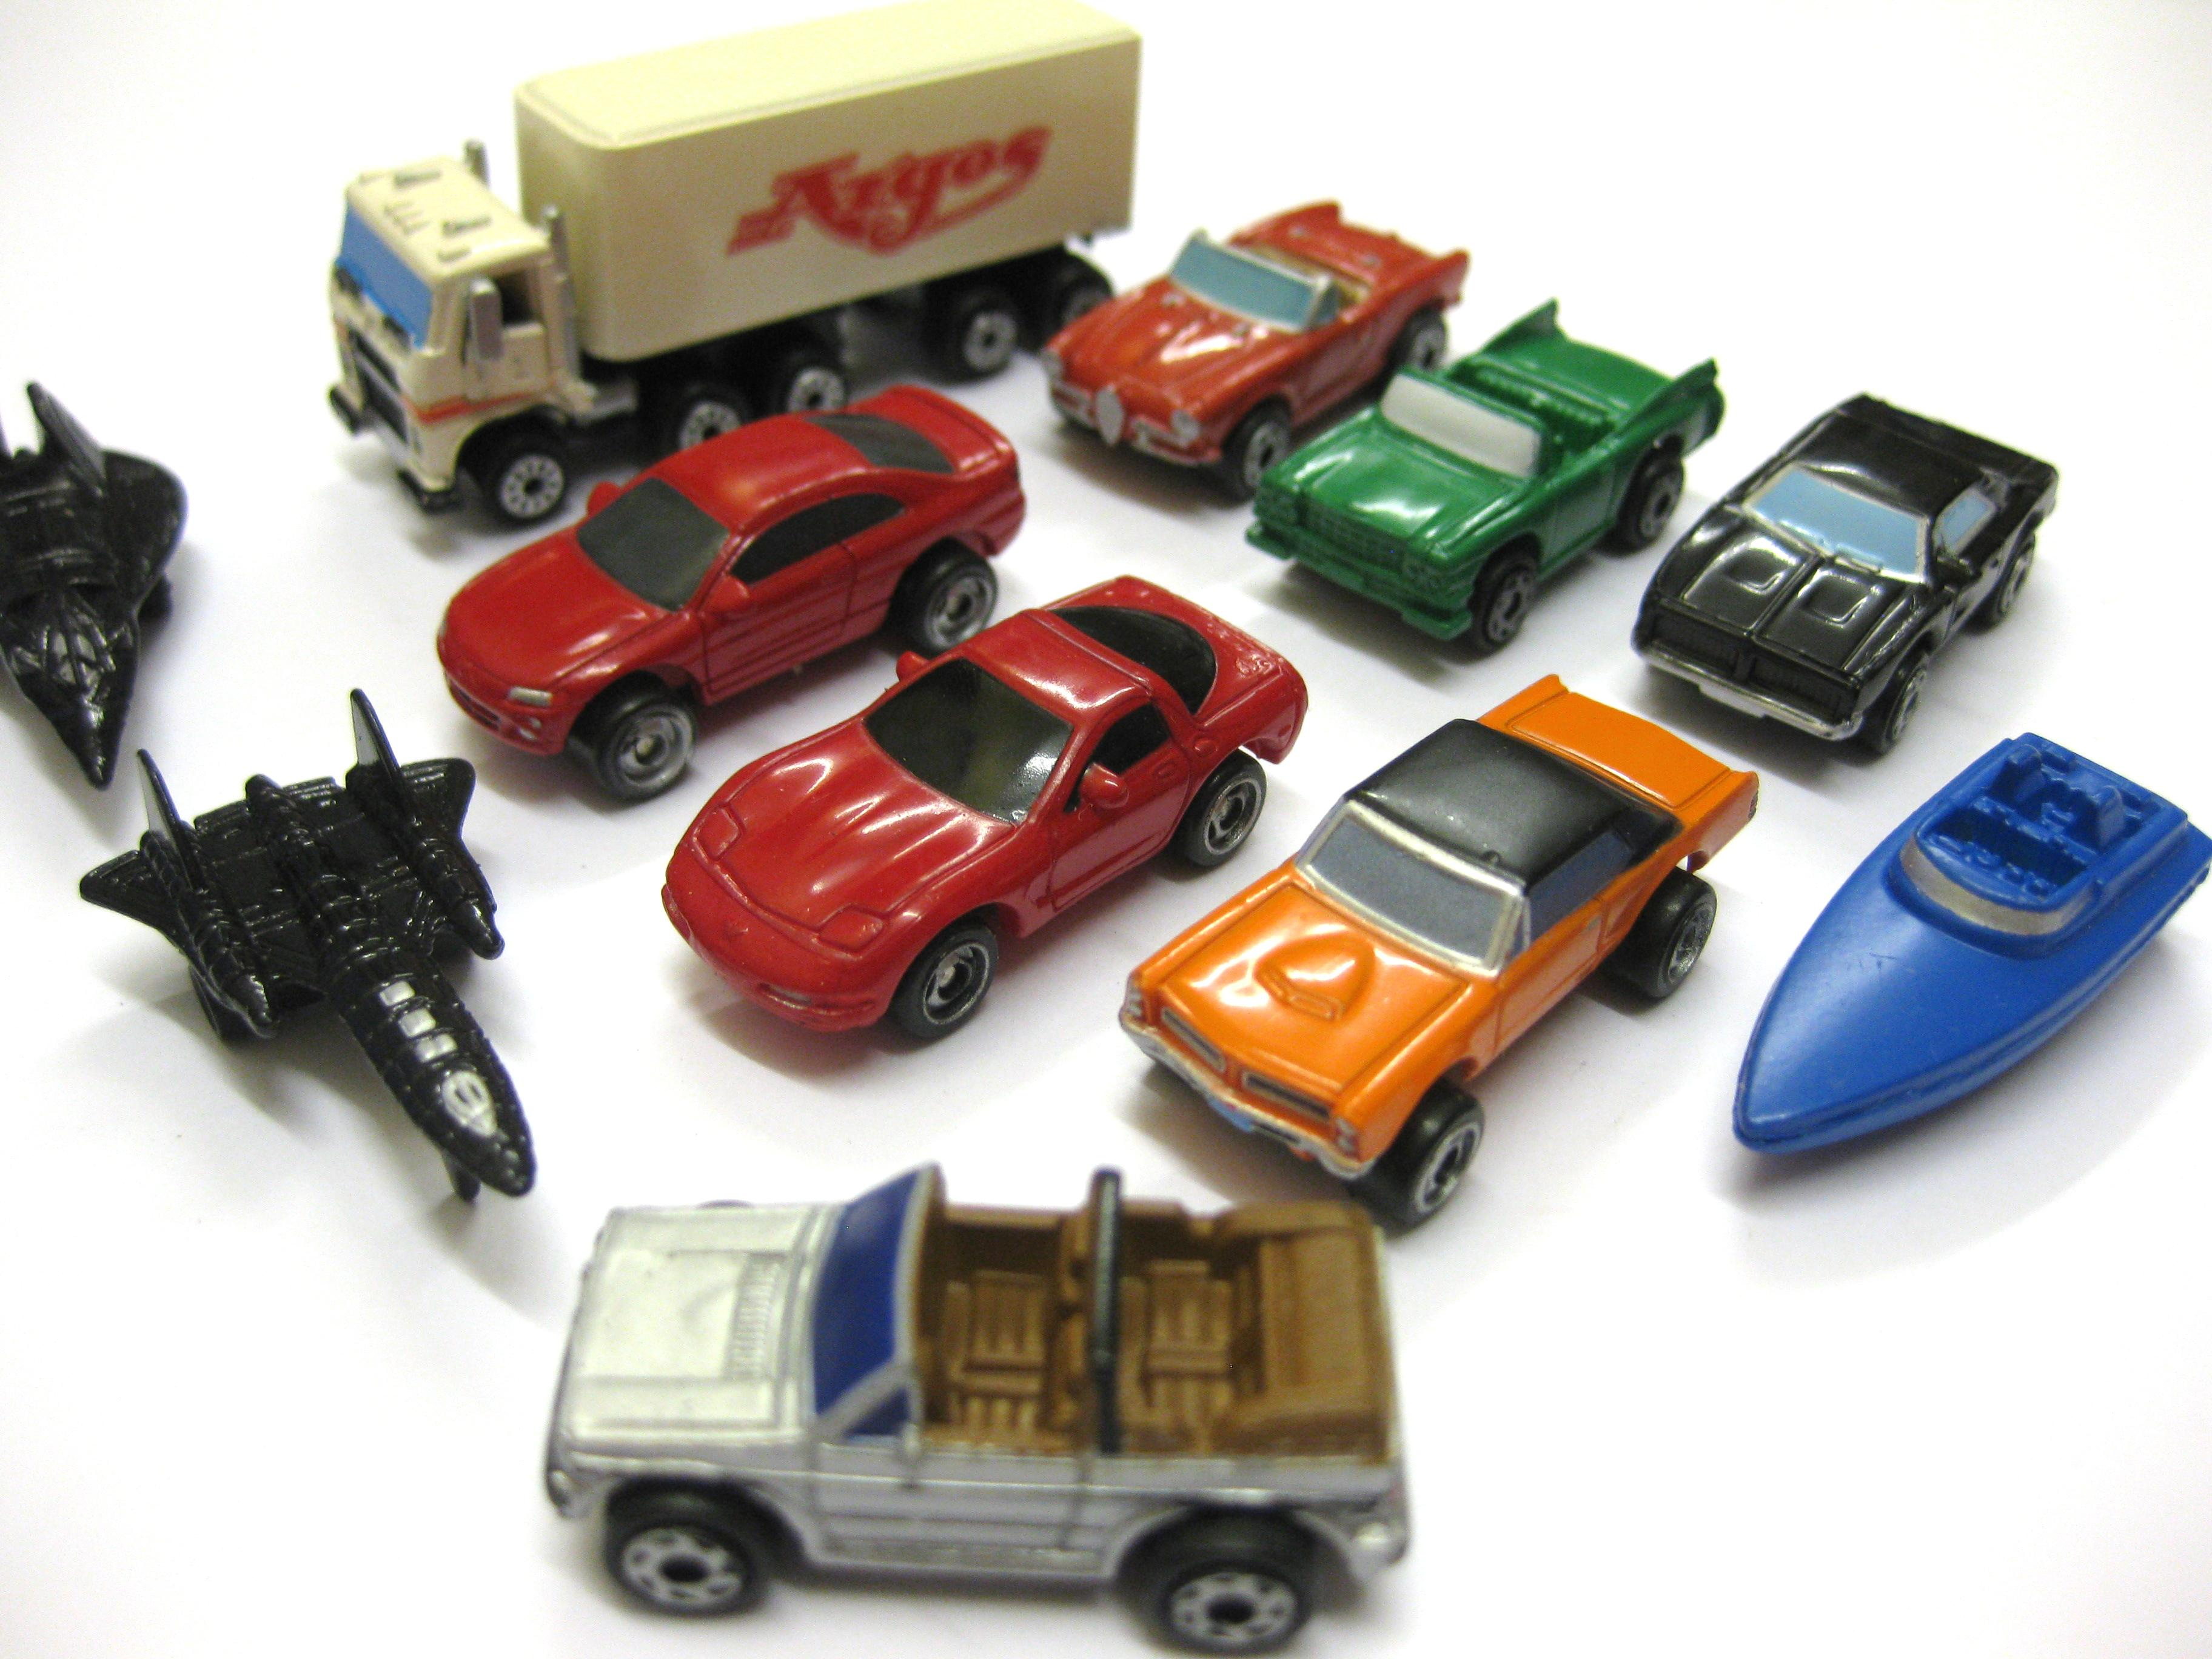 HQ Micro Machines Wallpapers | File 738.88Kb